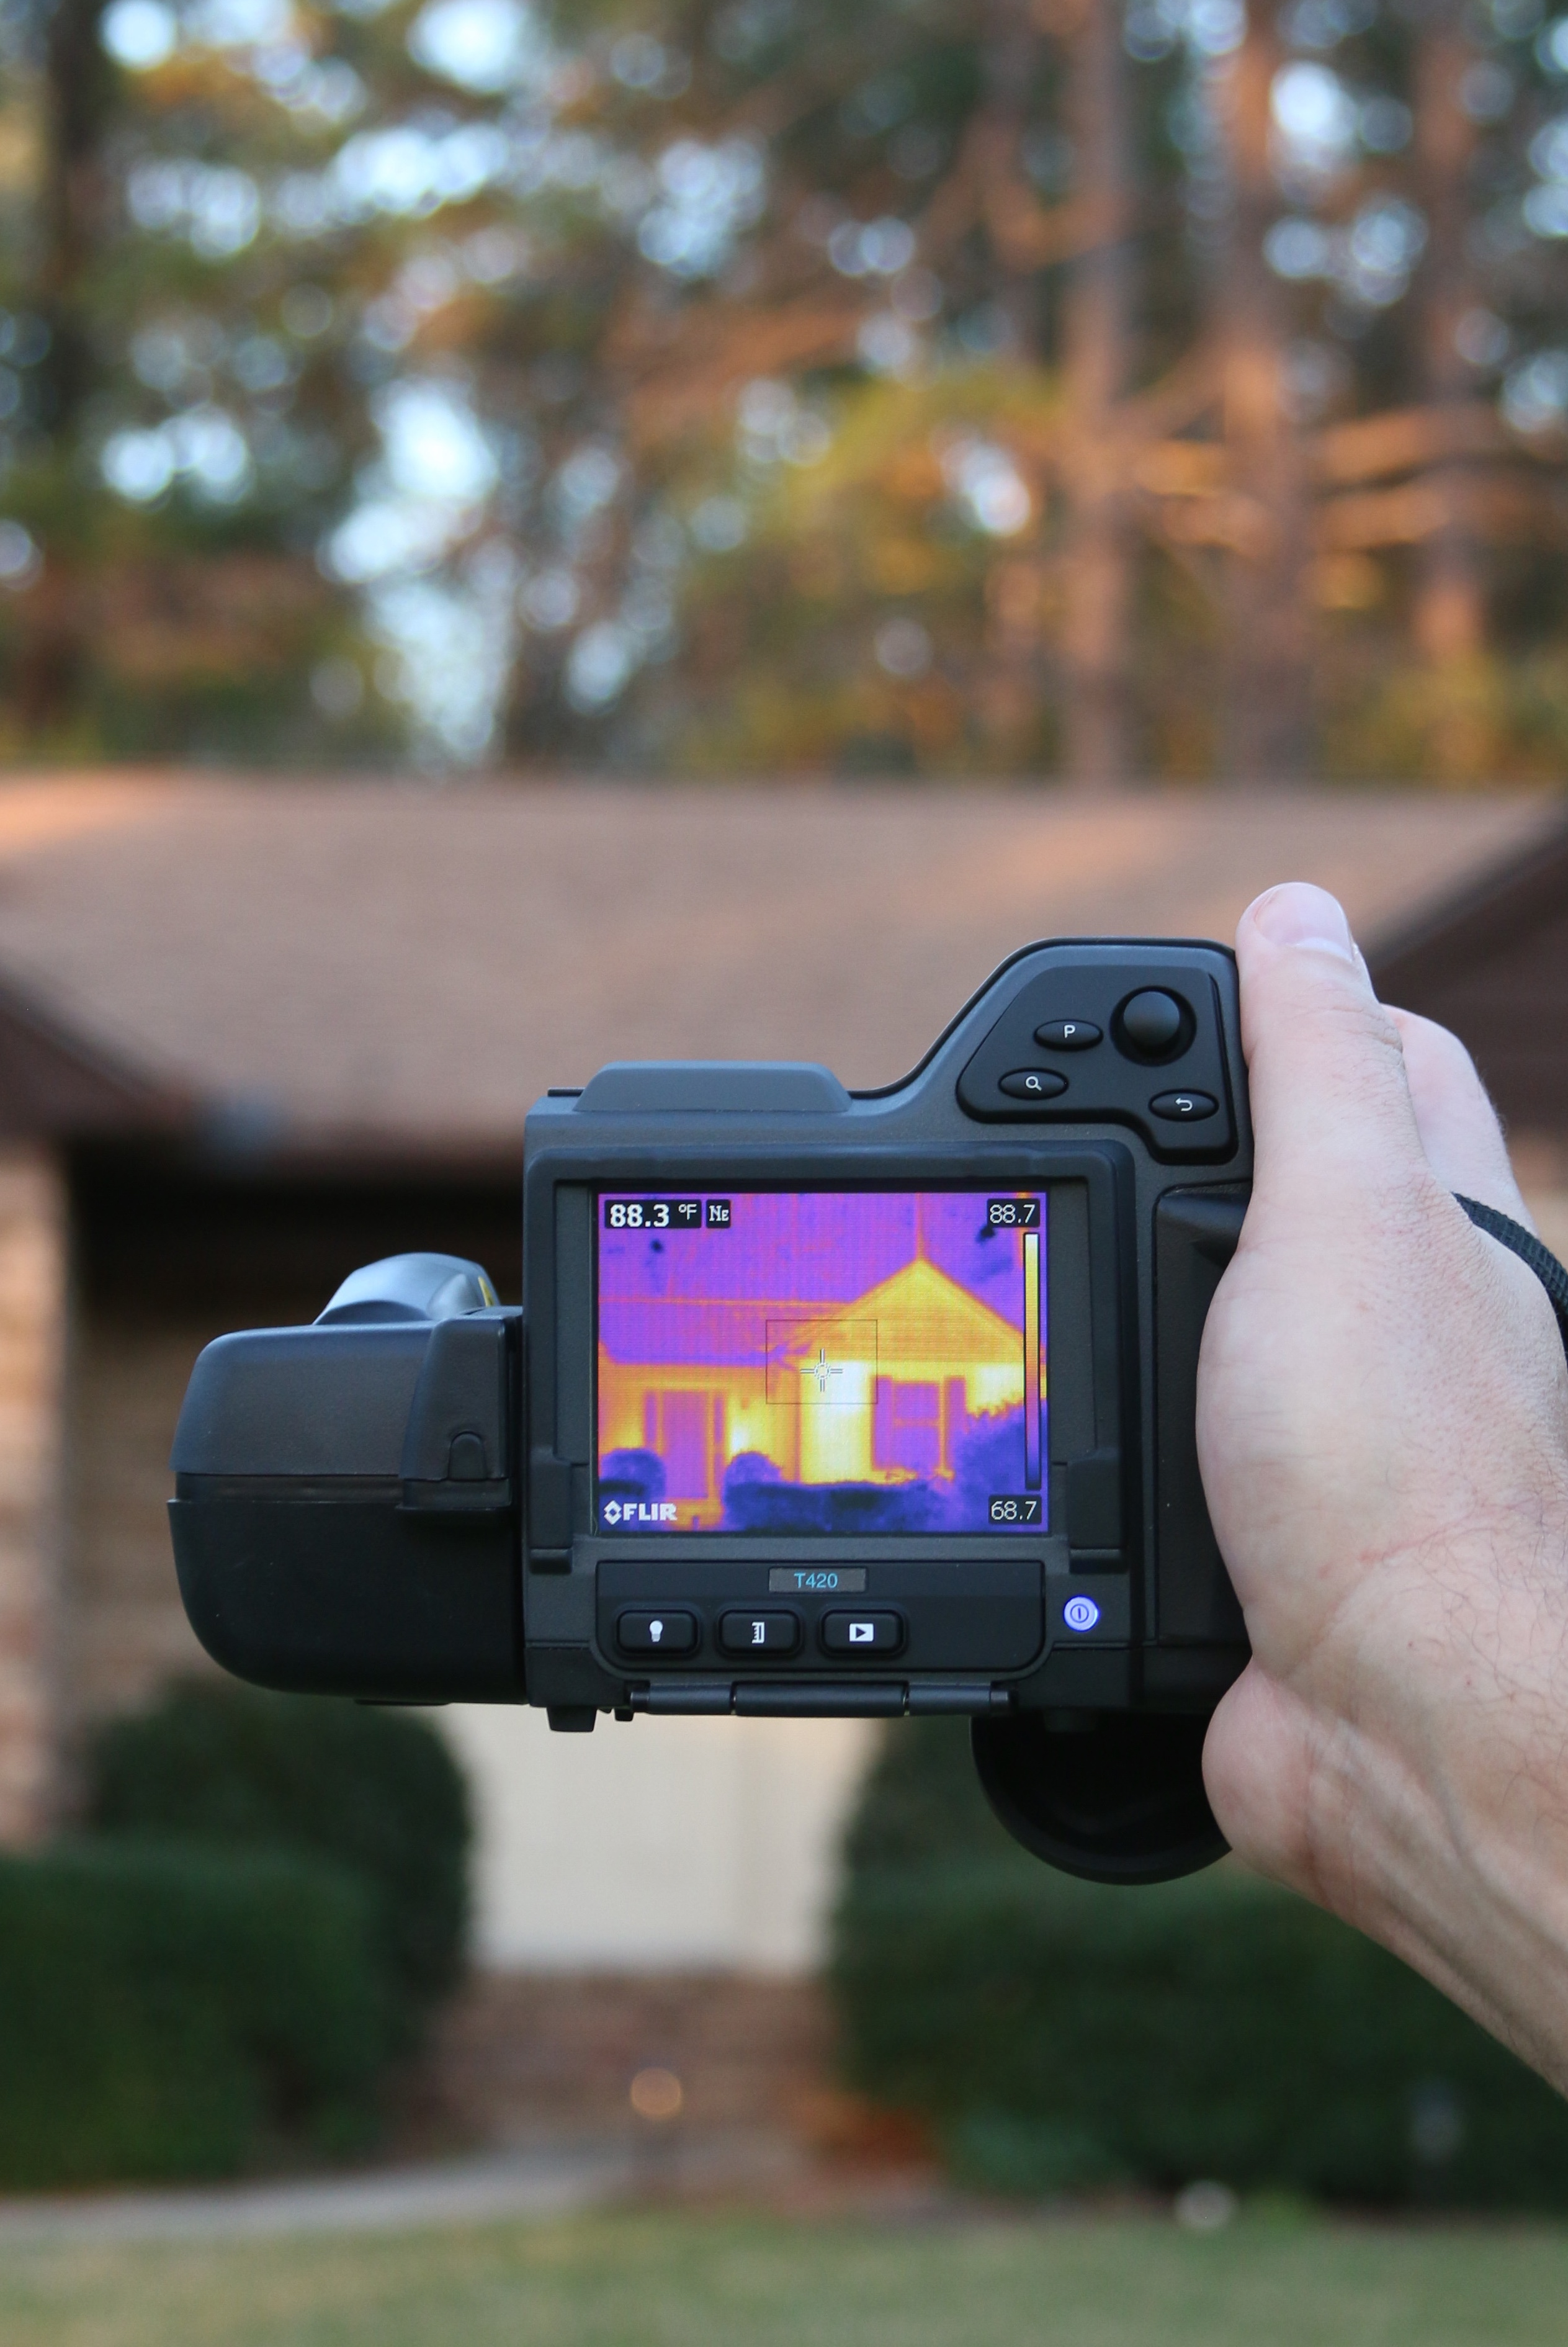 Home Inspection using Infrared Camera